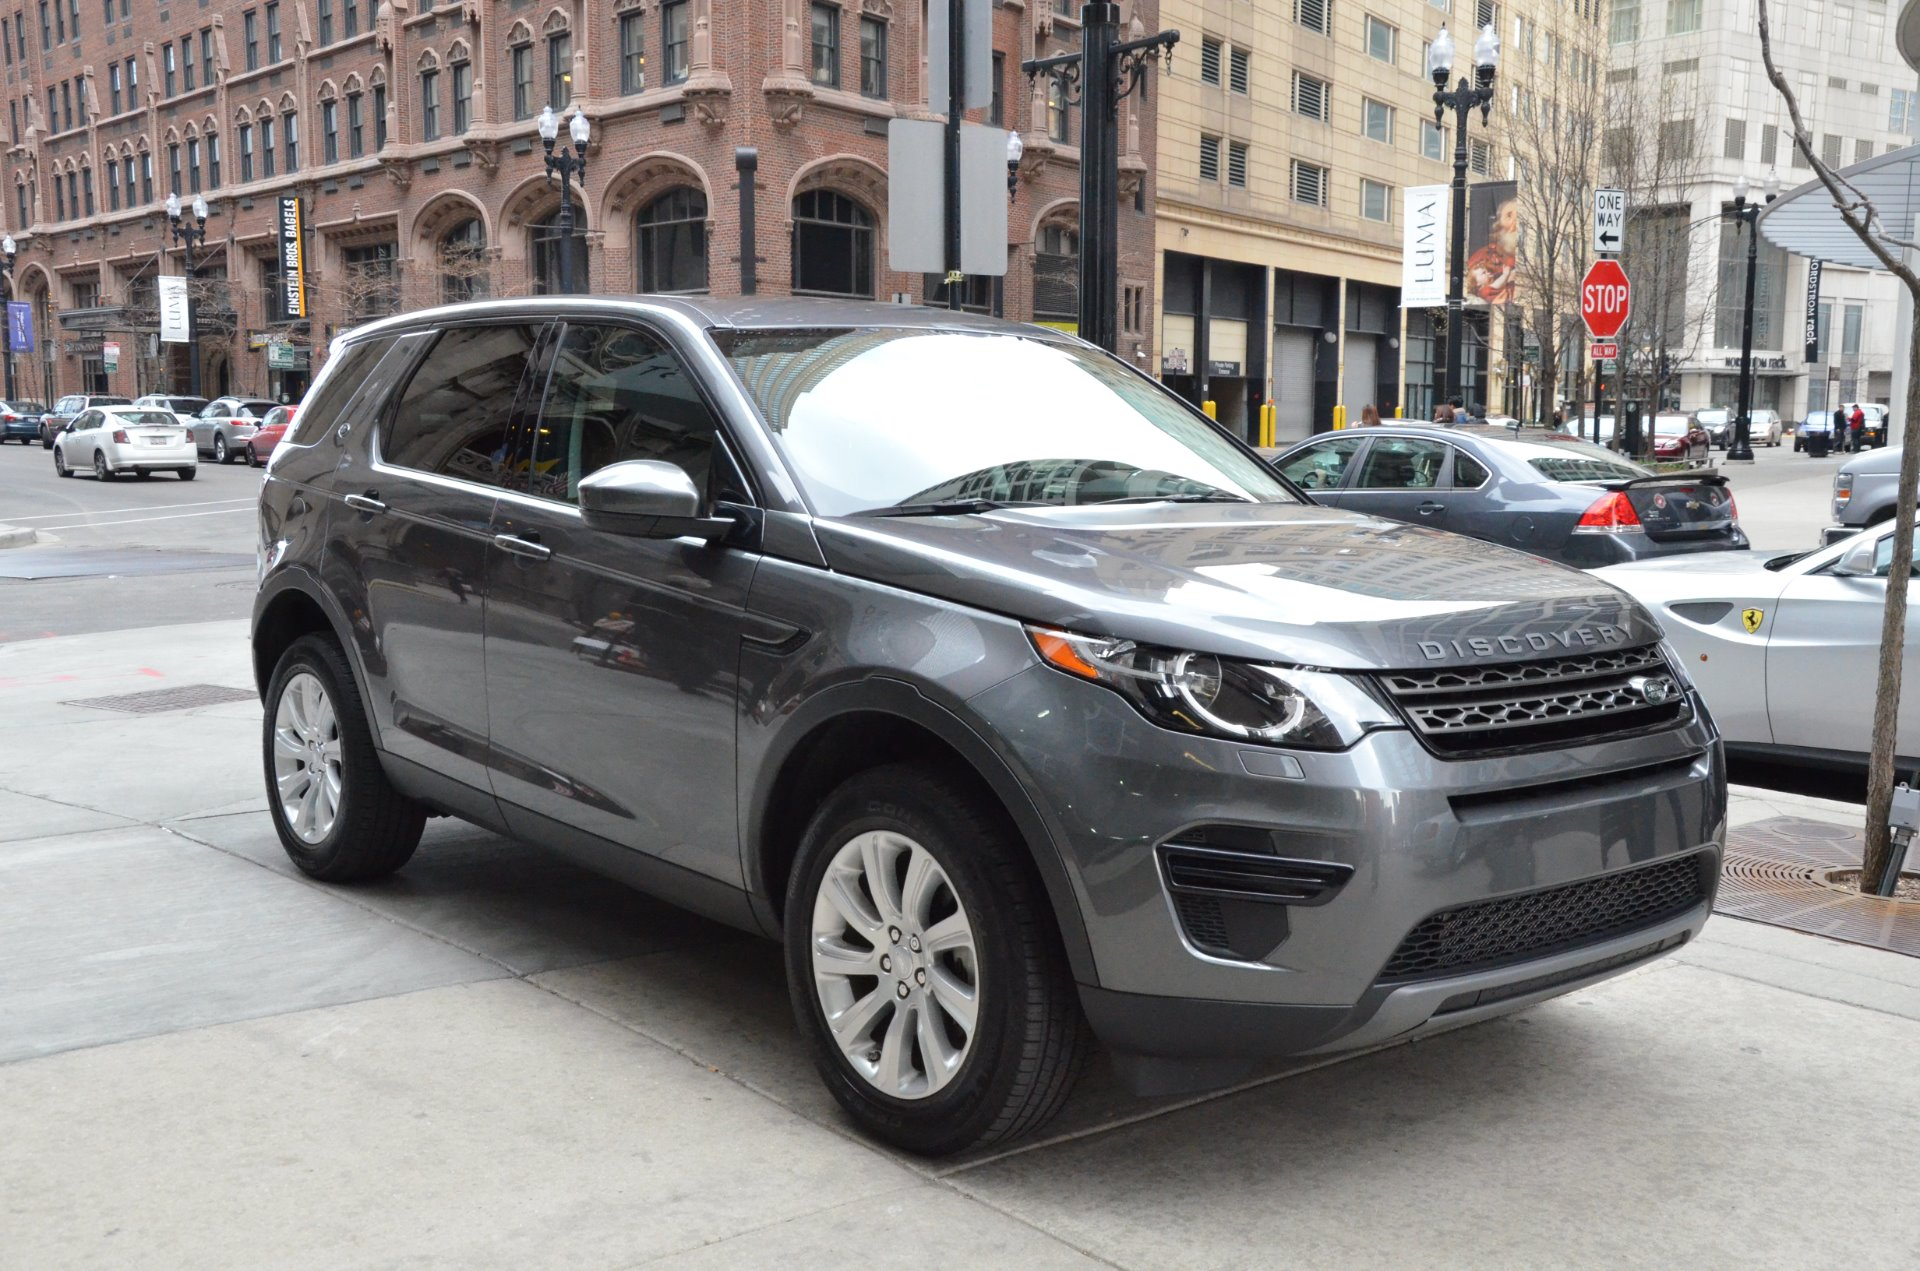 exterior discovery images carwale cars image land photo m landrover rover sport for sale